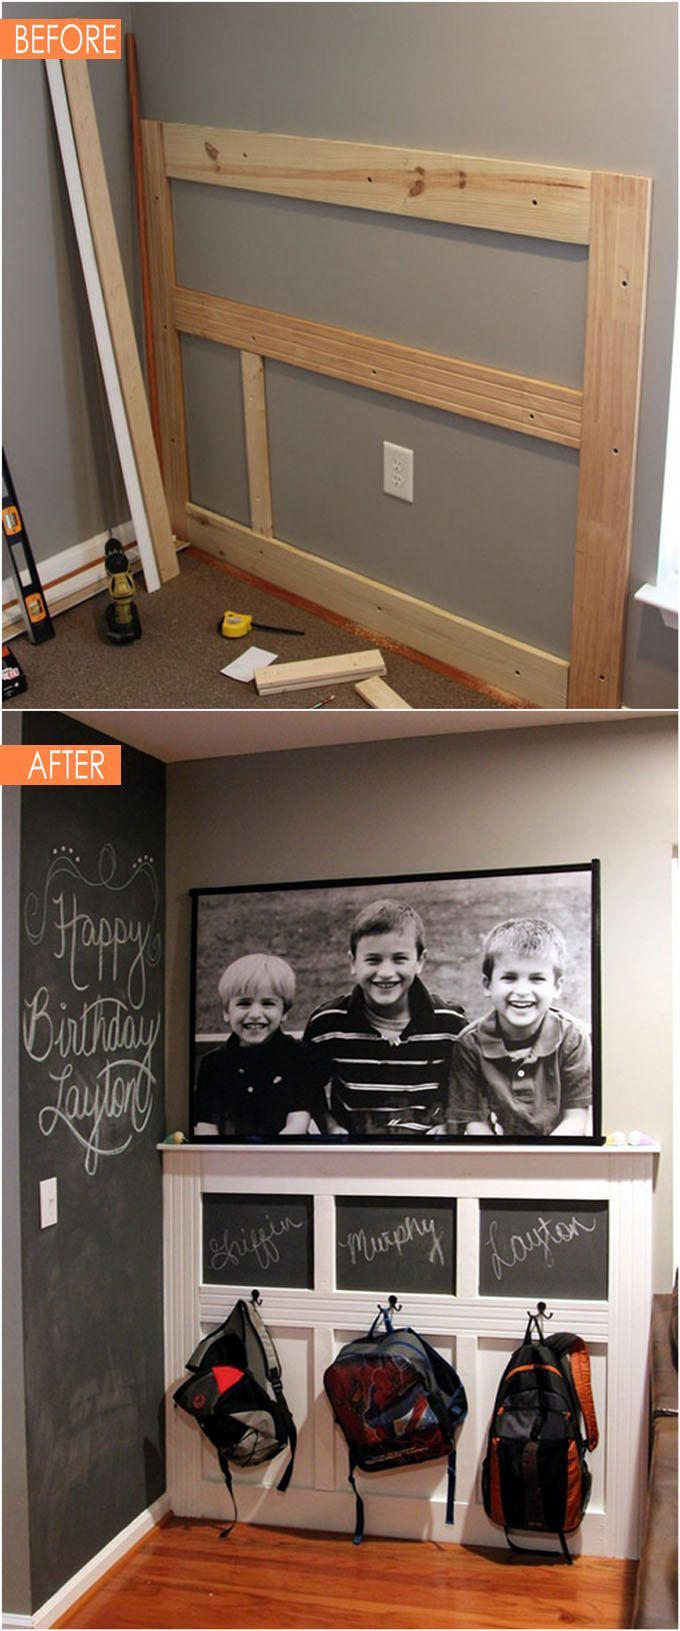 Idee lit escamotable cool Déco Salon - 21 Amazing Before After ...